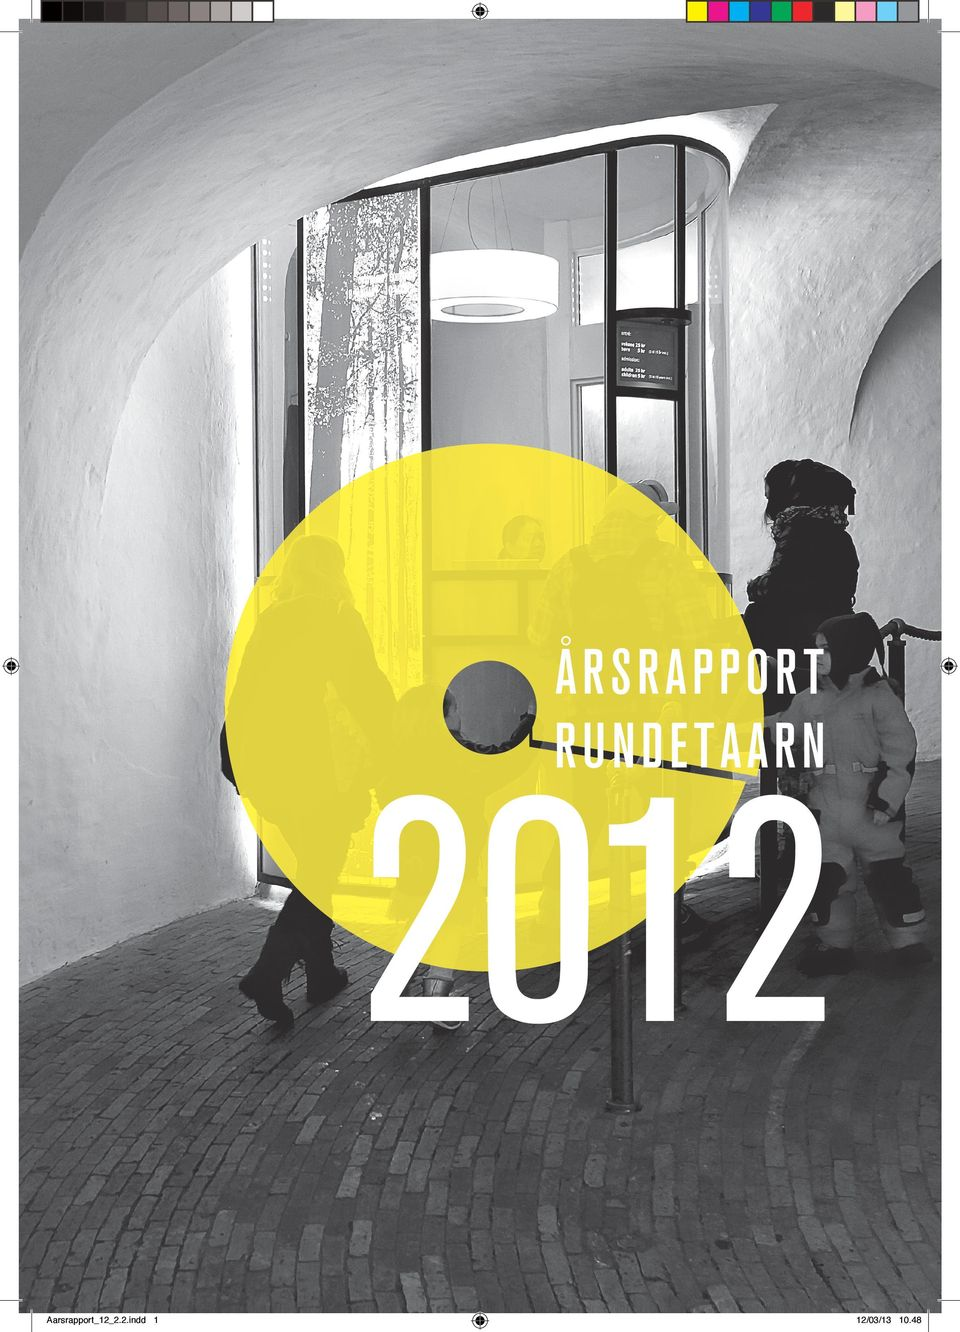 Aarsrapport_12_